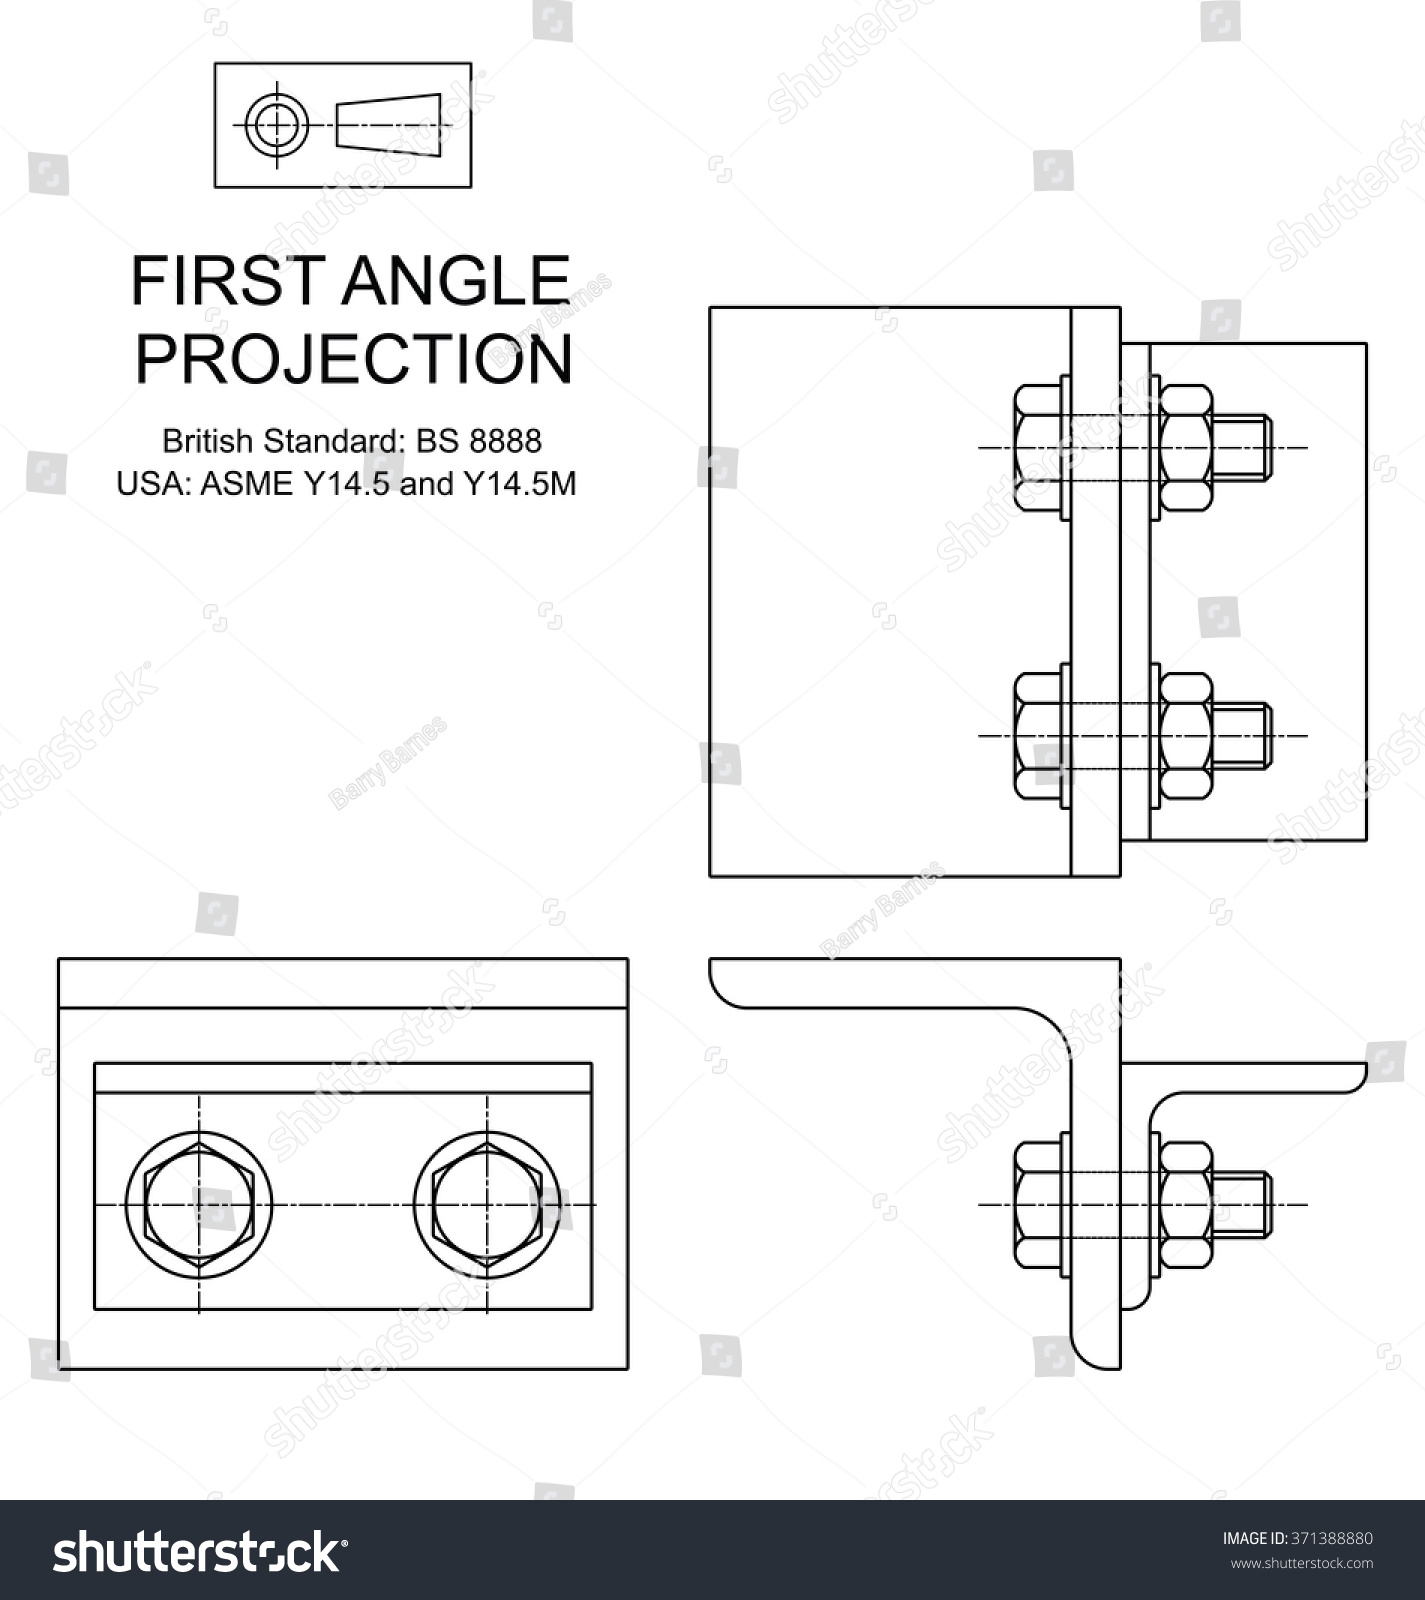 how to take a orthographic photo